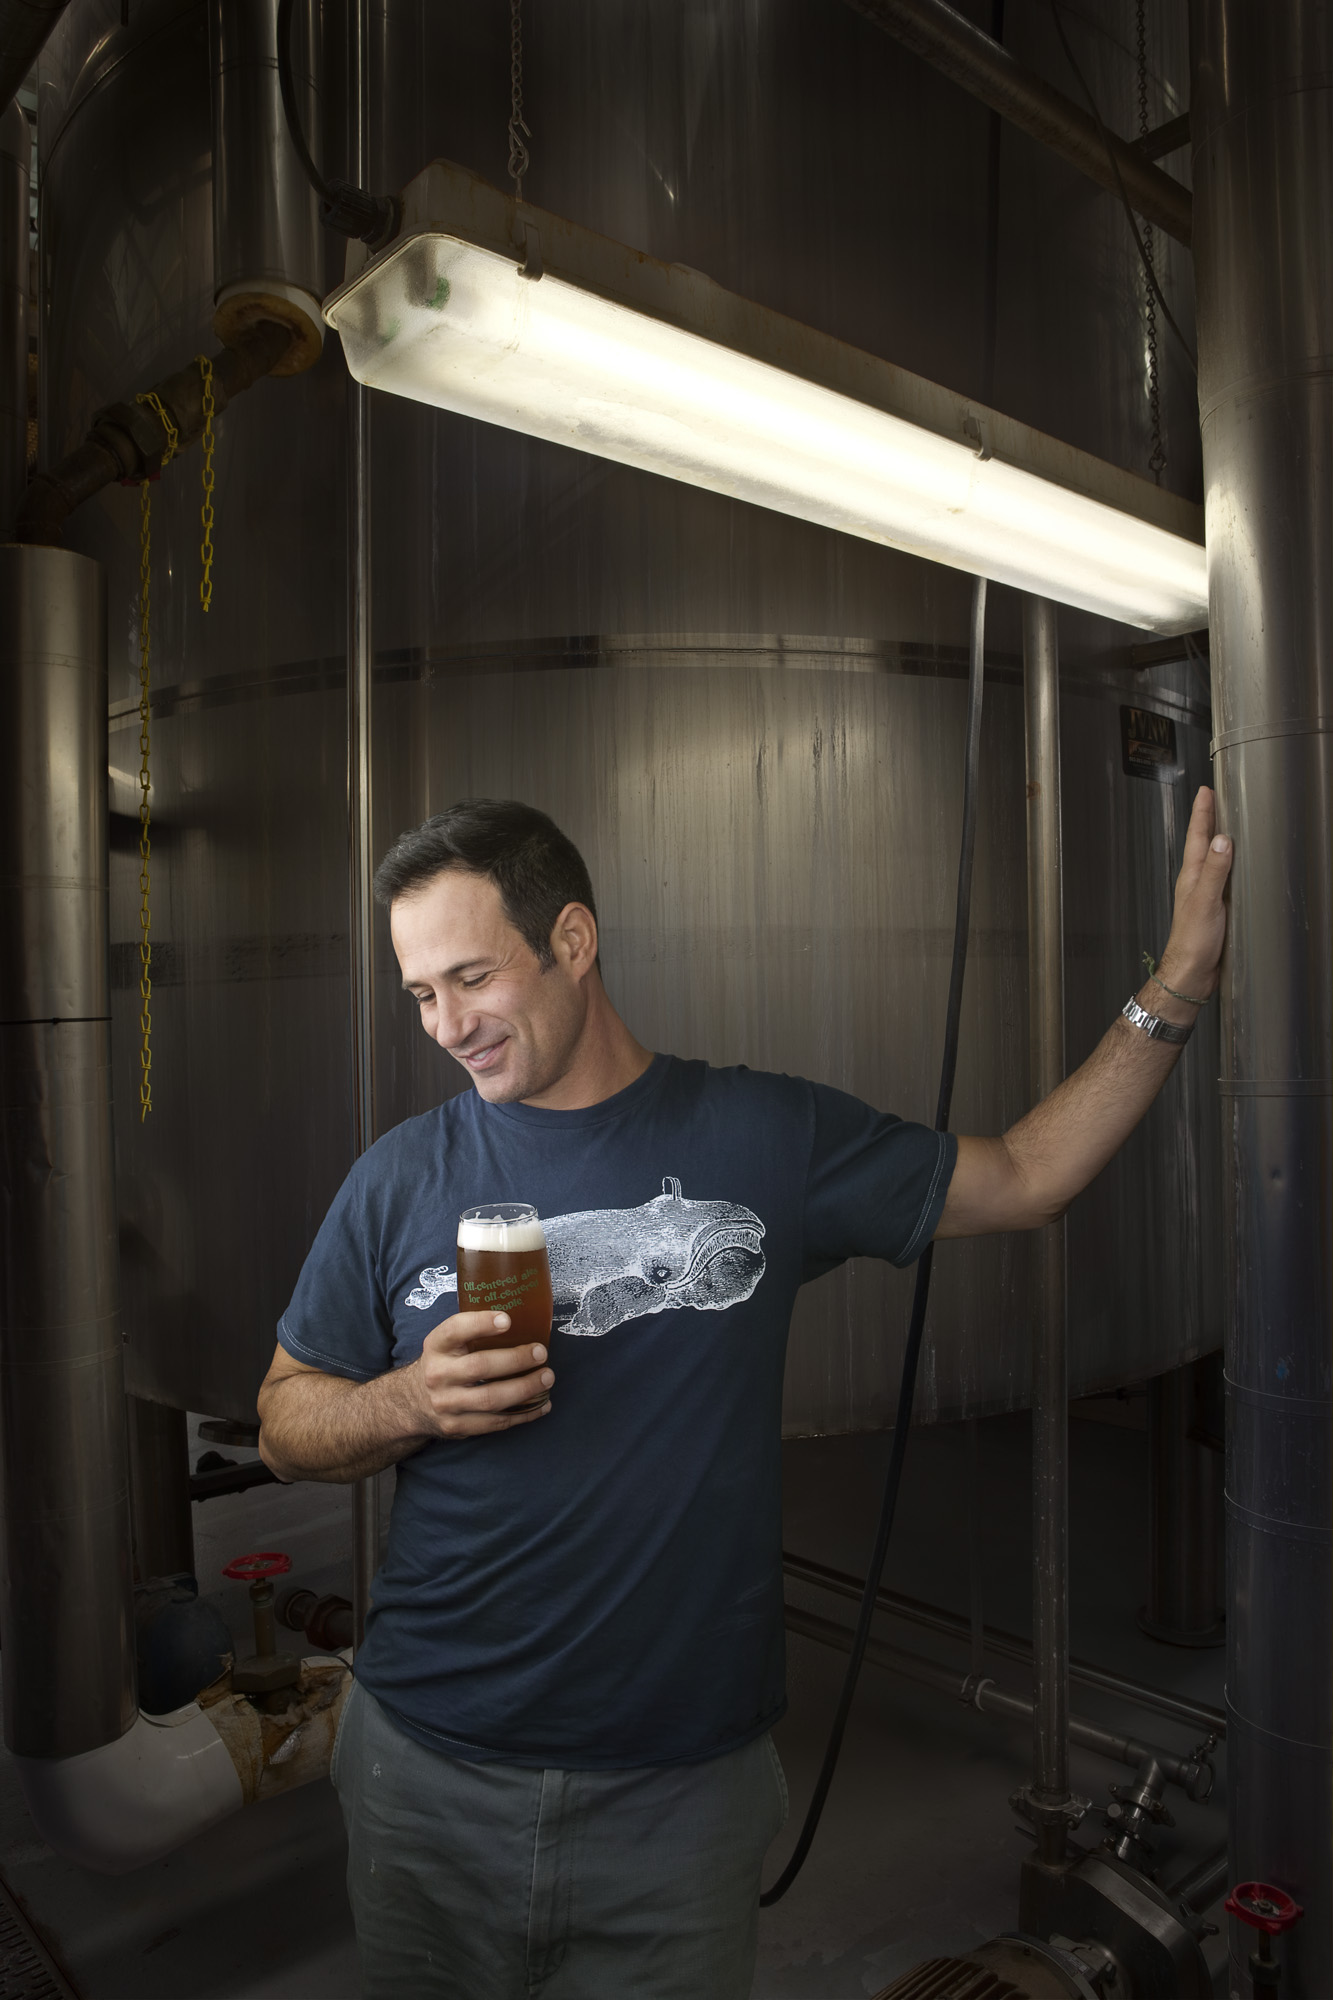 cc2010080 - Sam Calagione, founder of Dogfish Head Brewery, for